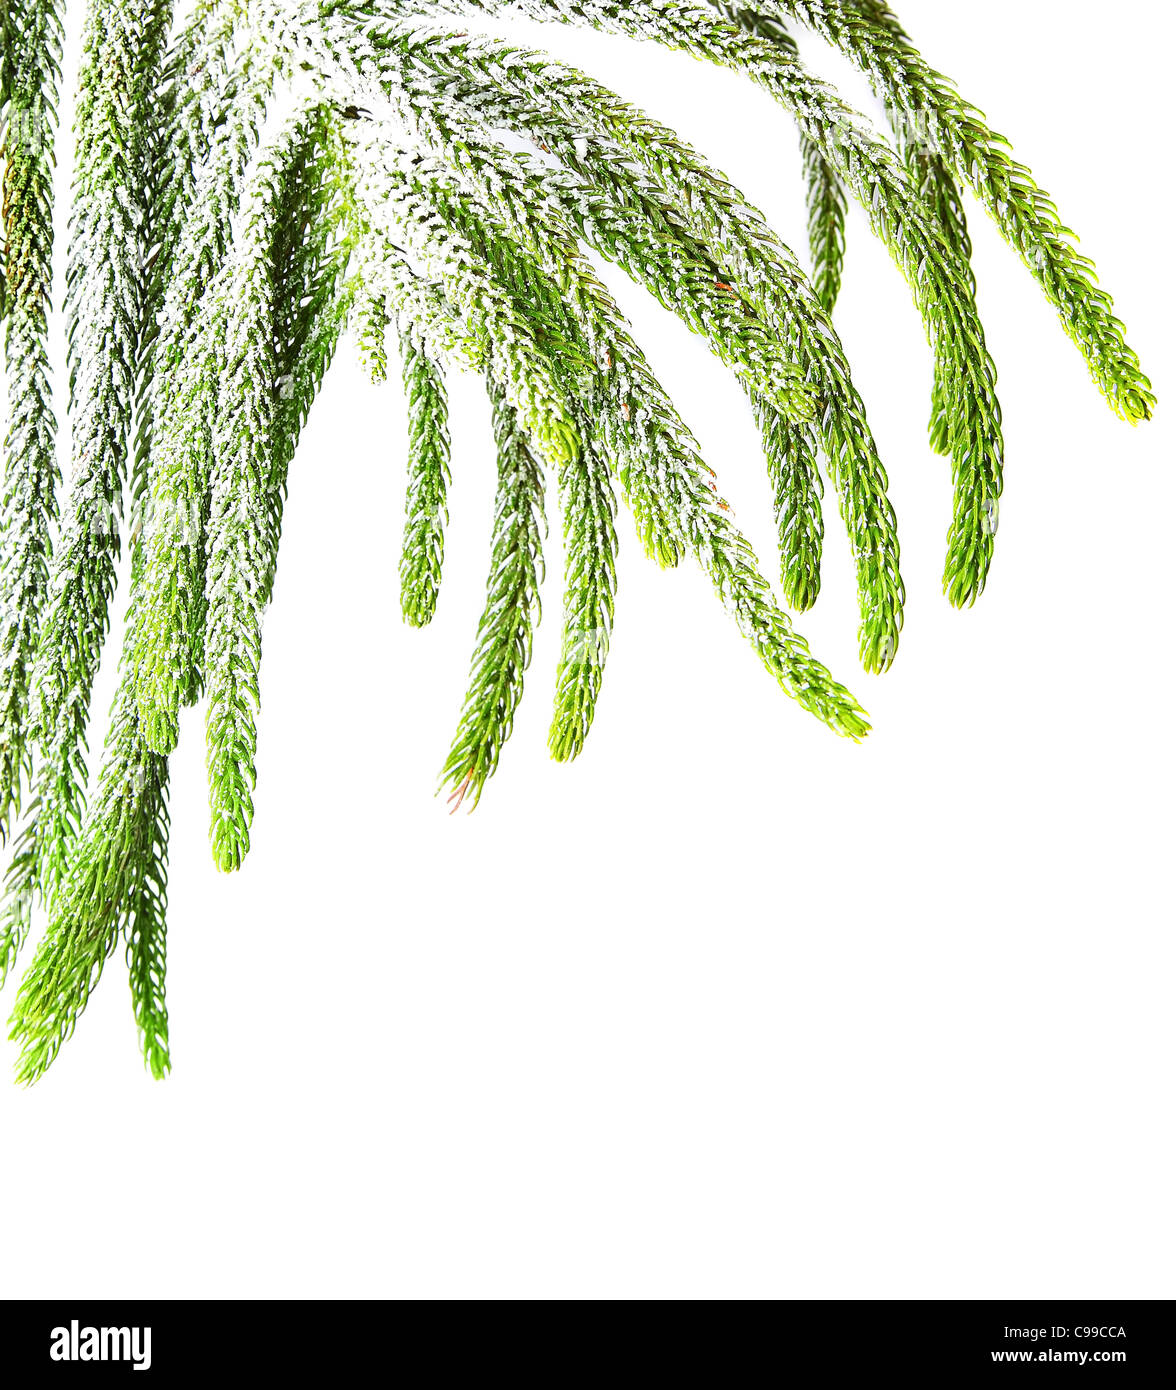 Beautiful green fir holiday border isolated on white background, Christmas tree branch - Stock Image